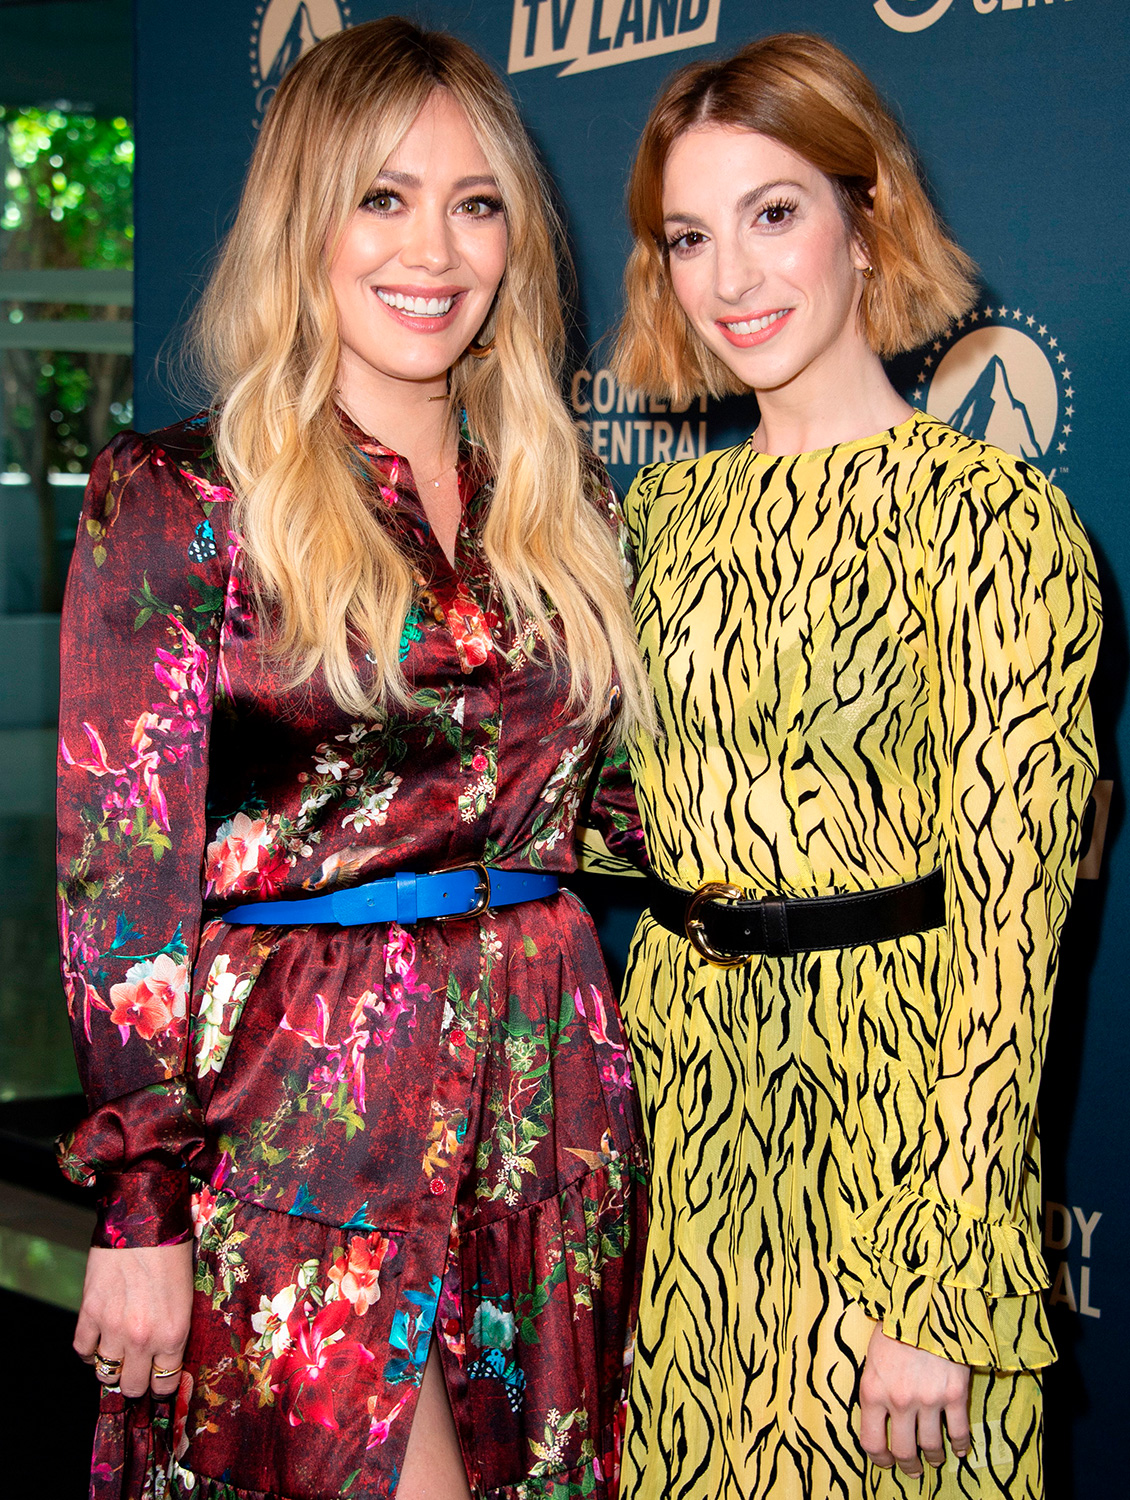 Hilary Duff (L) and Molly Kate Bernard attend the first Comedy Central, Paramount Network and TV Land Press Day, on May 30, 2019 in Los Angeles, California